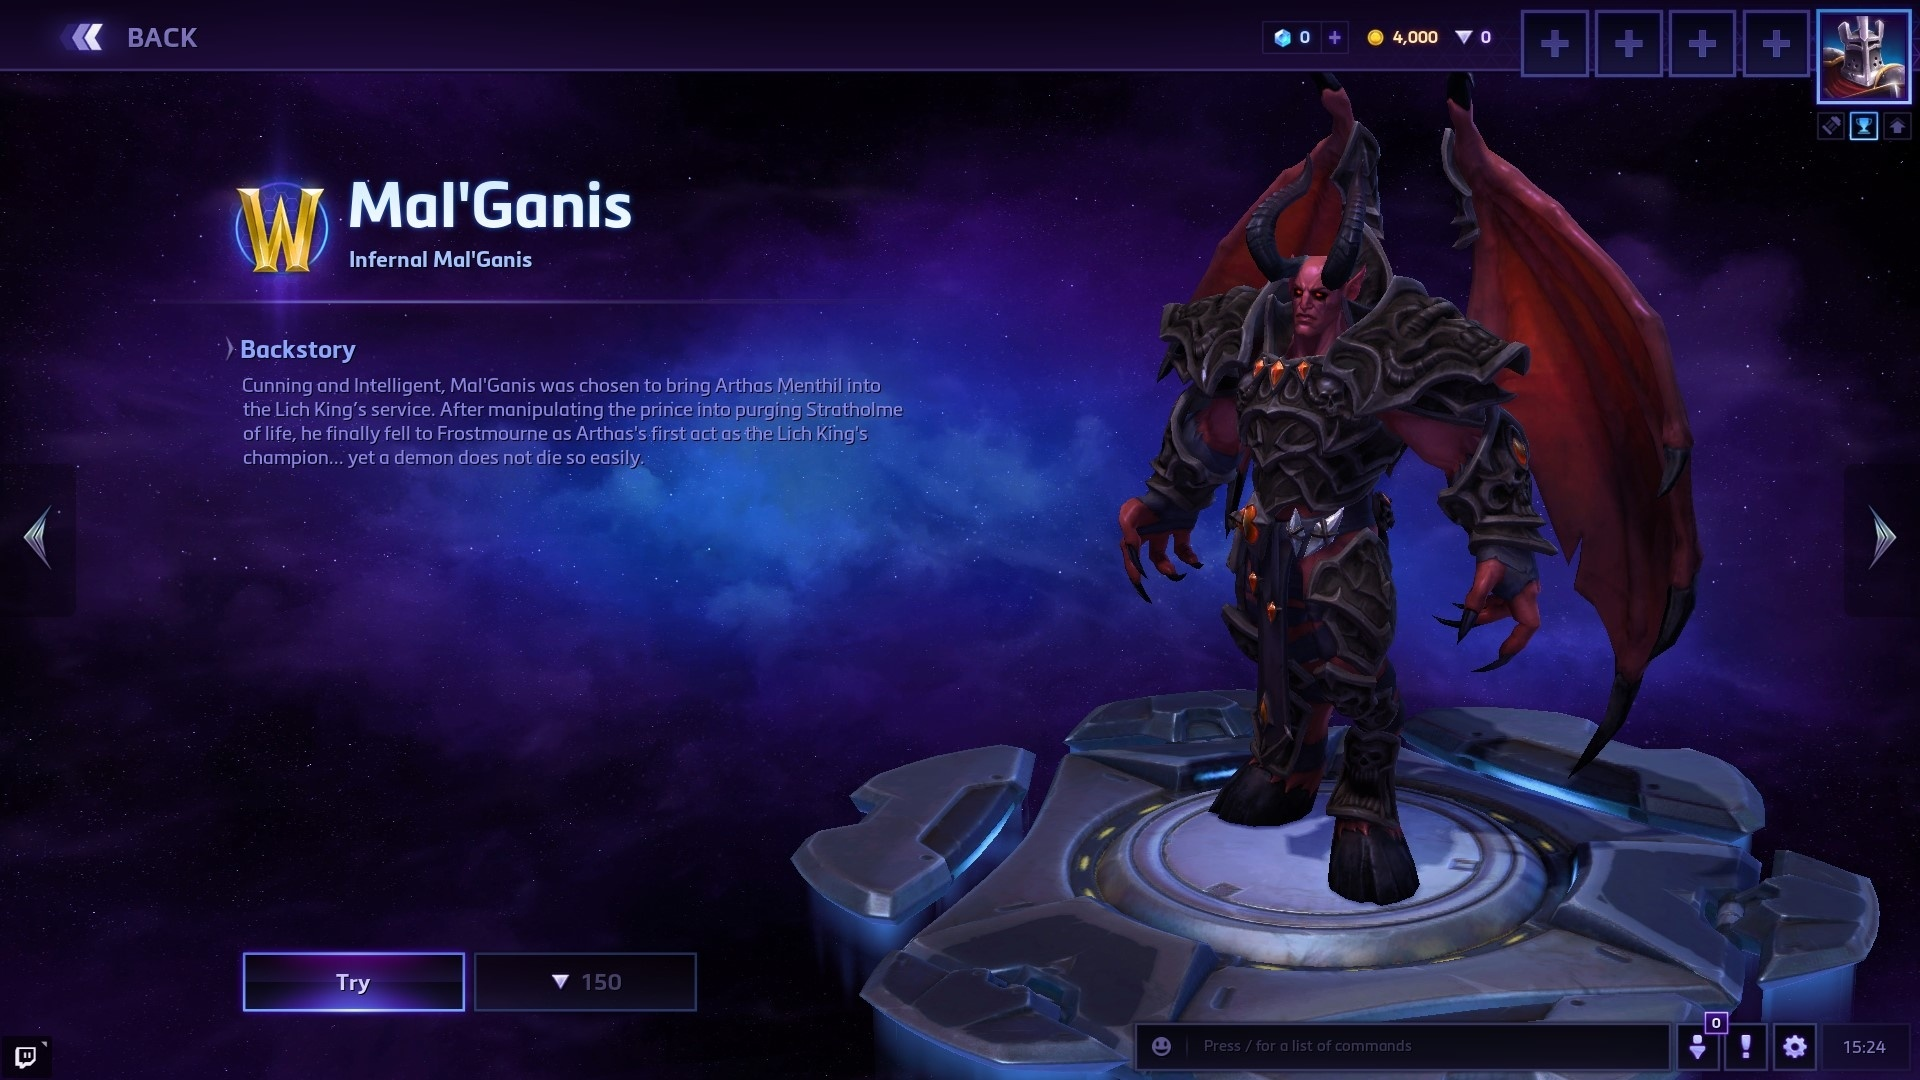 Heroes Of The Storm Mal Ganis Spotlight Wowhead News Talent builds, playstyle, matchups, maps, etc. heroes of the storm mal ganis